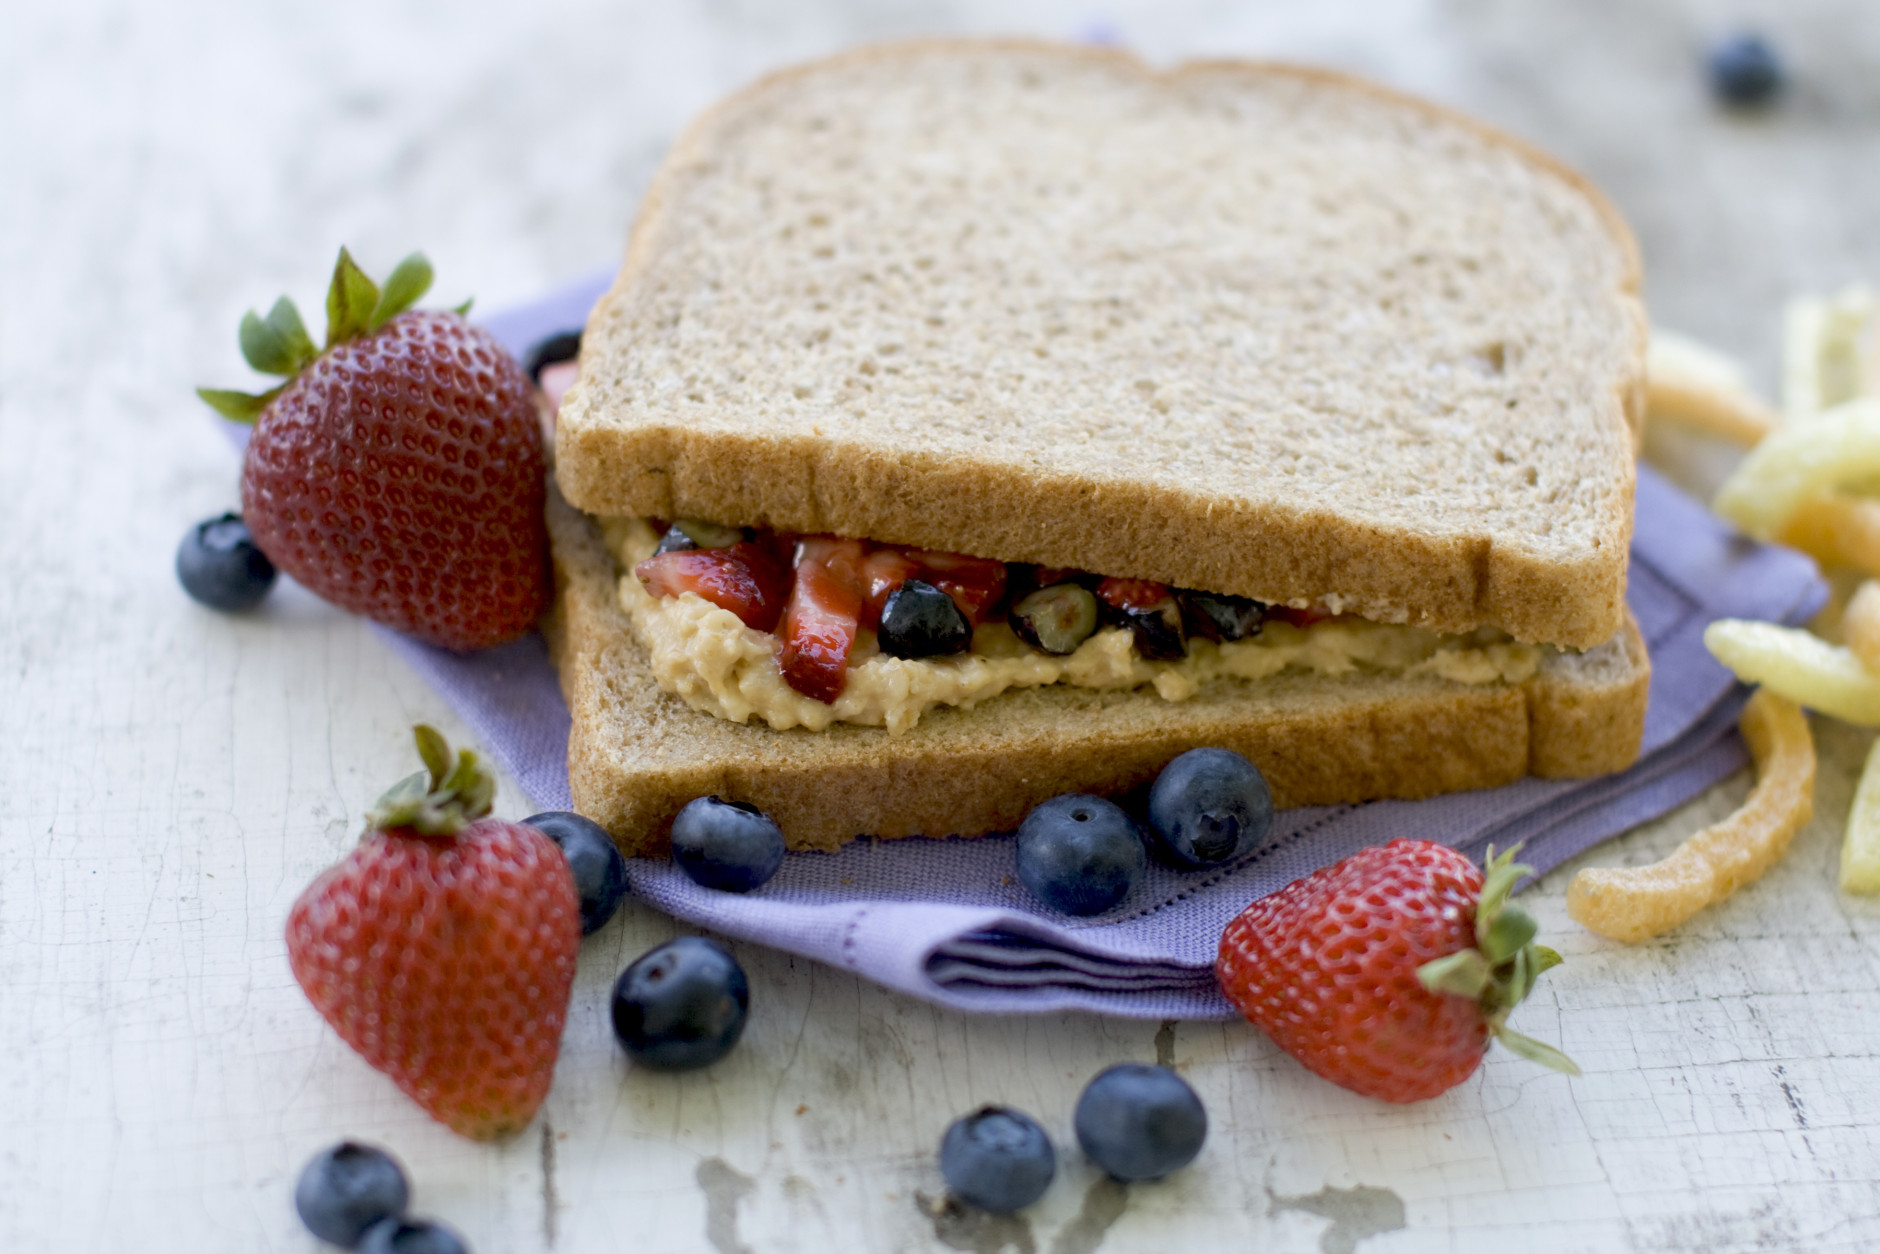 In this image taken on July 9, 2012, a healthy remake of a PB&J sandwich with fresh berries is shown in Concord, N.H. (AP Photo/Matthew Mead)